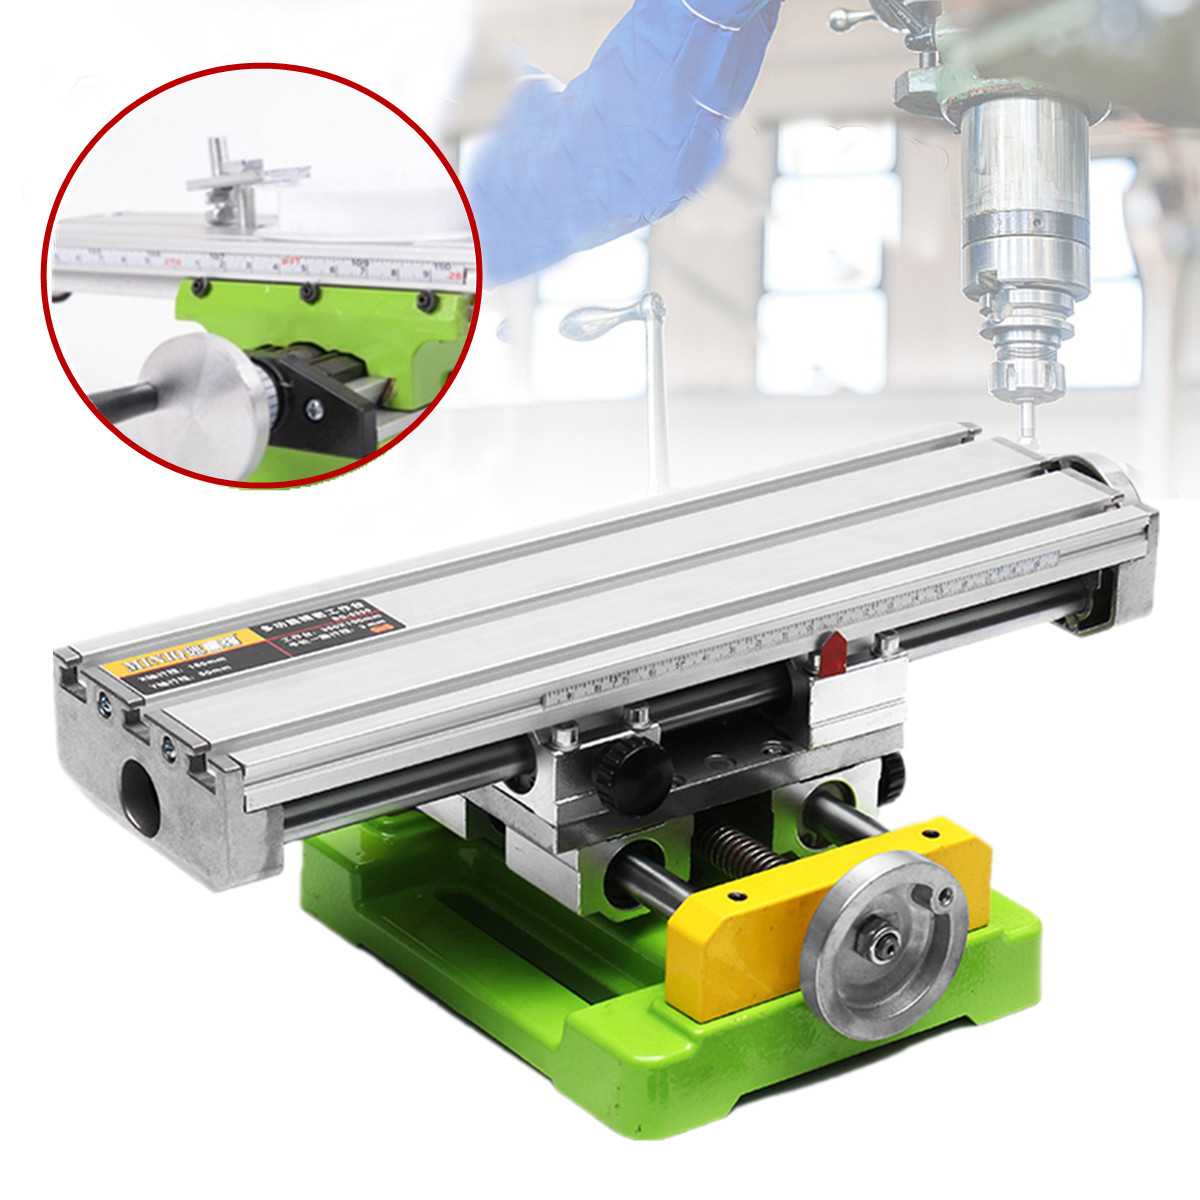 New Miniature Precision Multifunction Milling Machine Bench Drill Vise Fixture Worktable X Y-axis adjustment Coordinate TableNew Miniature Precision Multifunction Milling Machine Bench Drill Vise Fixture Worktable X Y-axis adjustment Coordinate Table